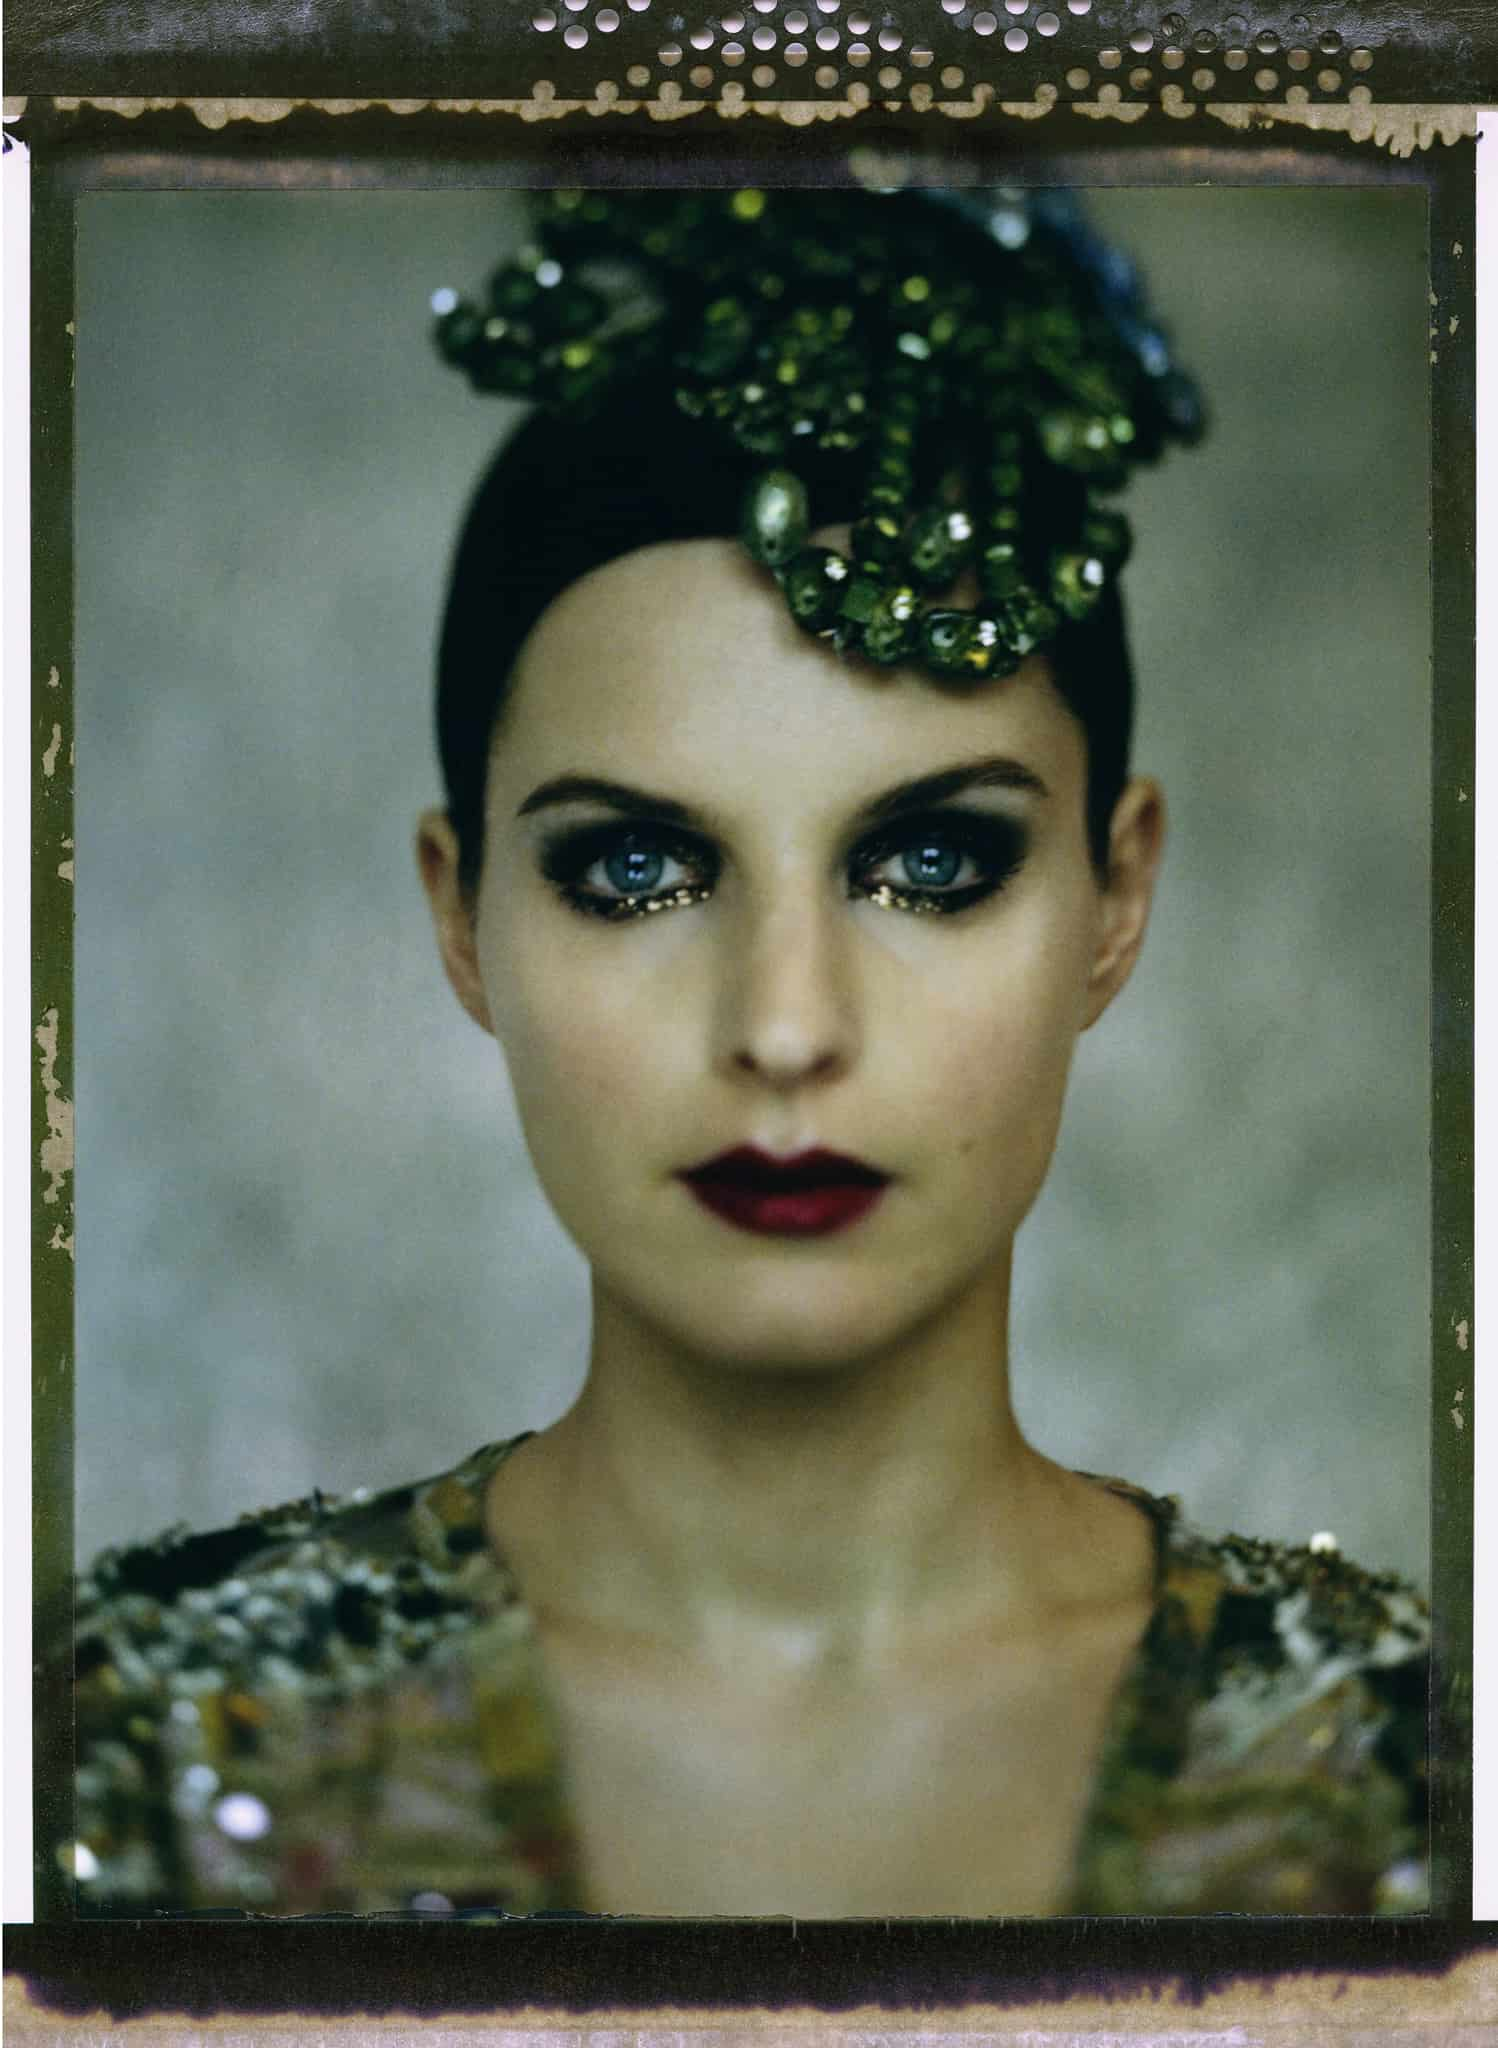 Fine art color photography of a fashion model wearing haute couture and fantasy jewellery by Christian Lacroix.